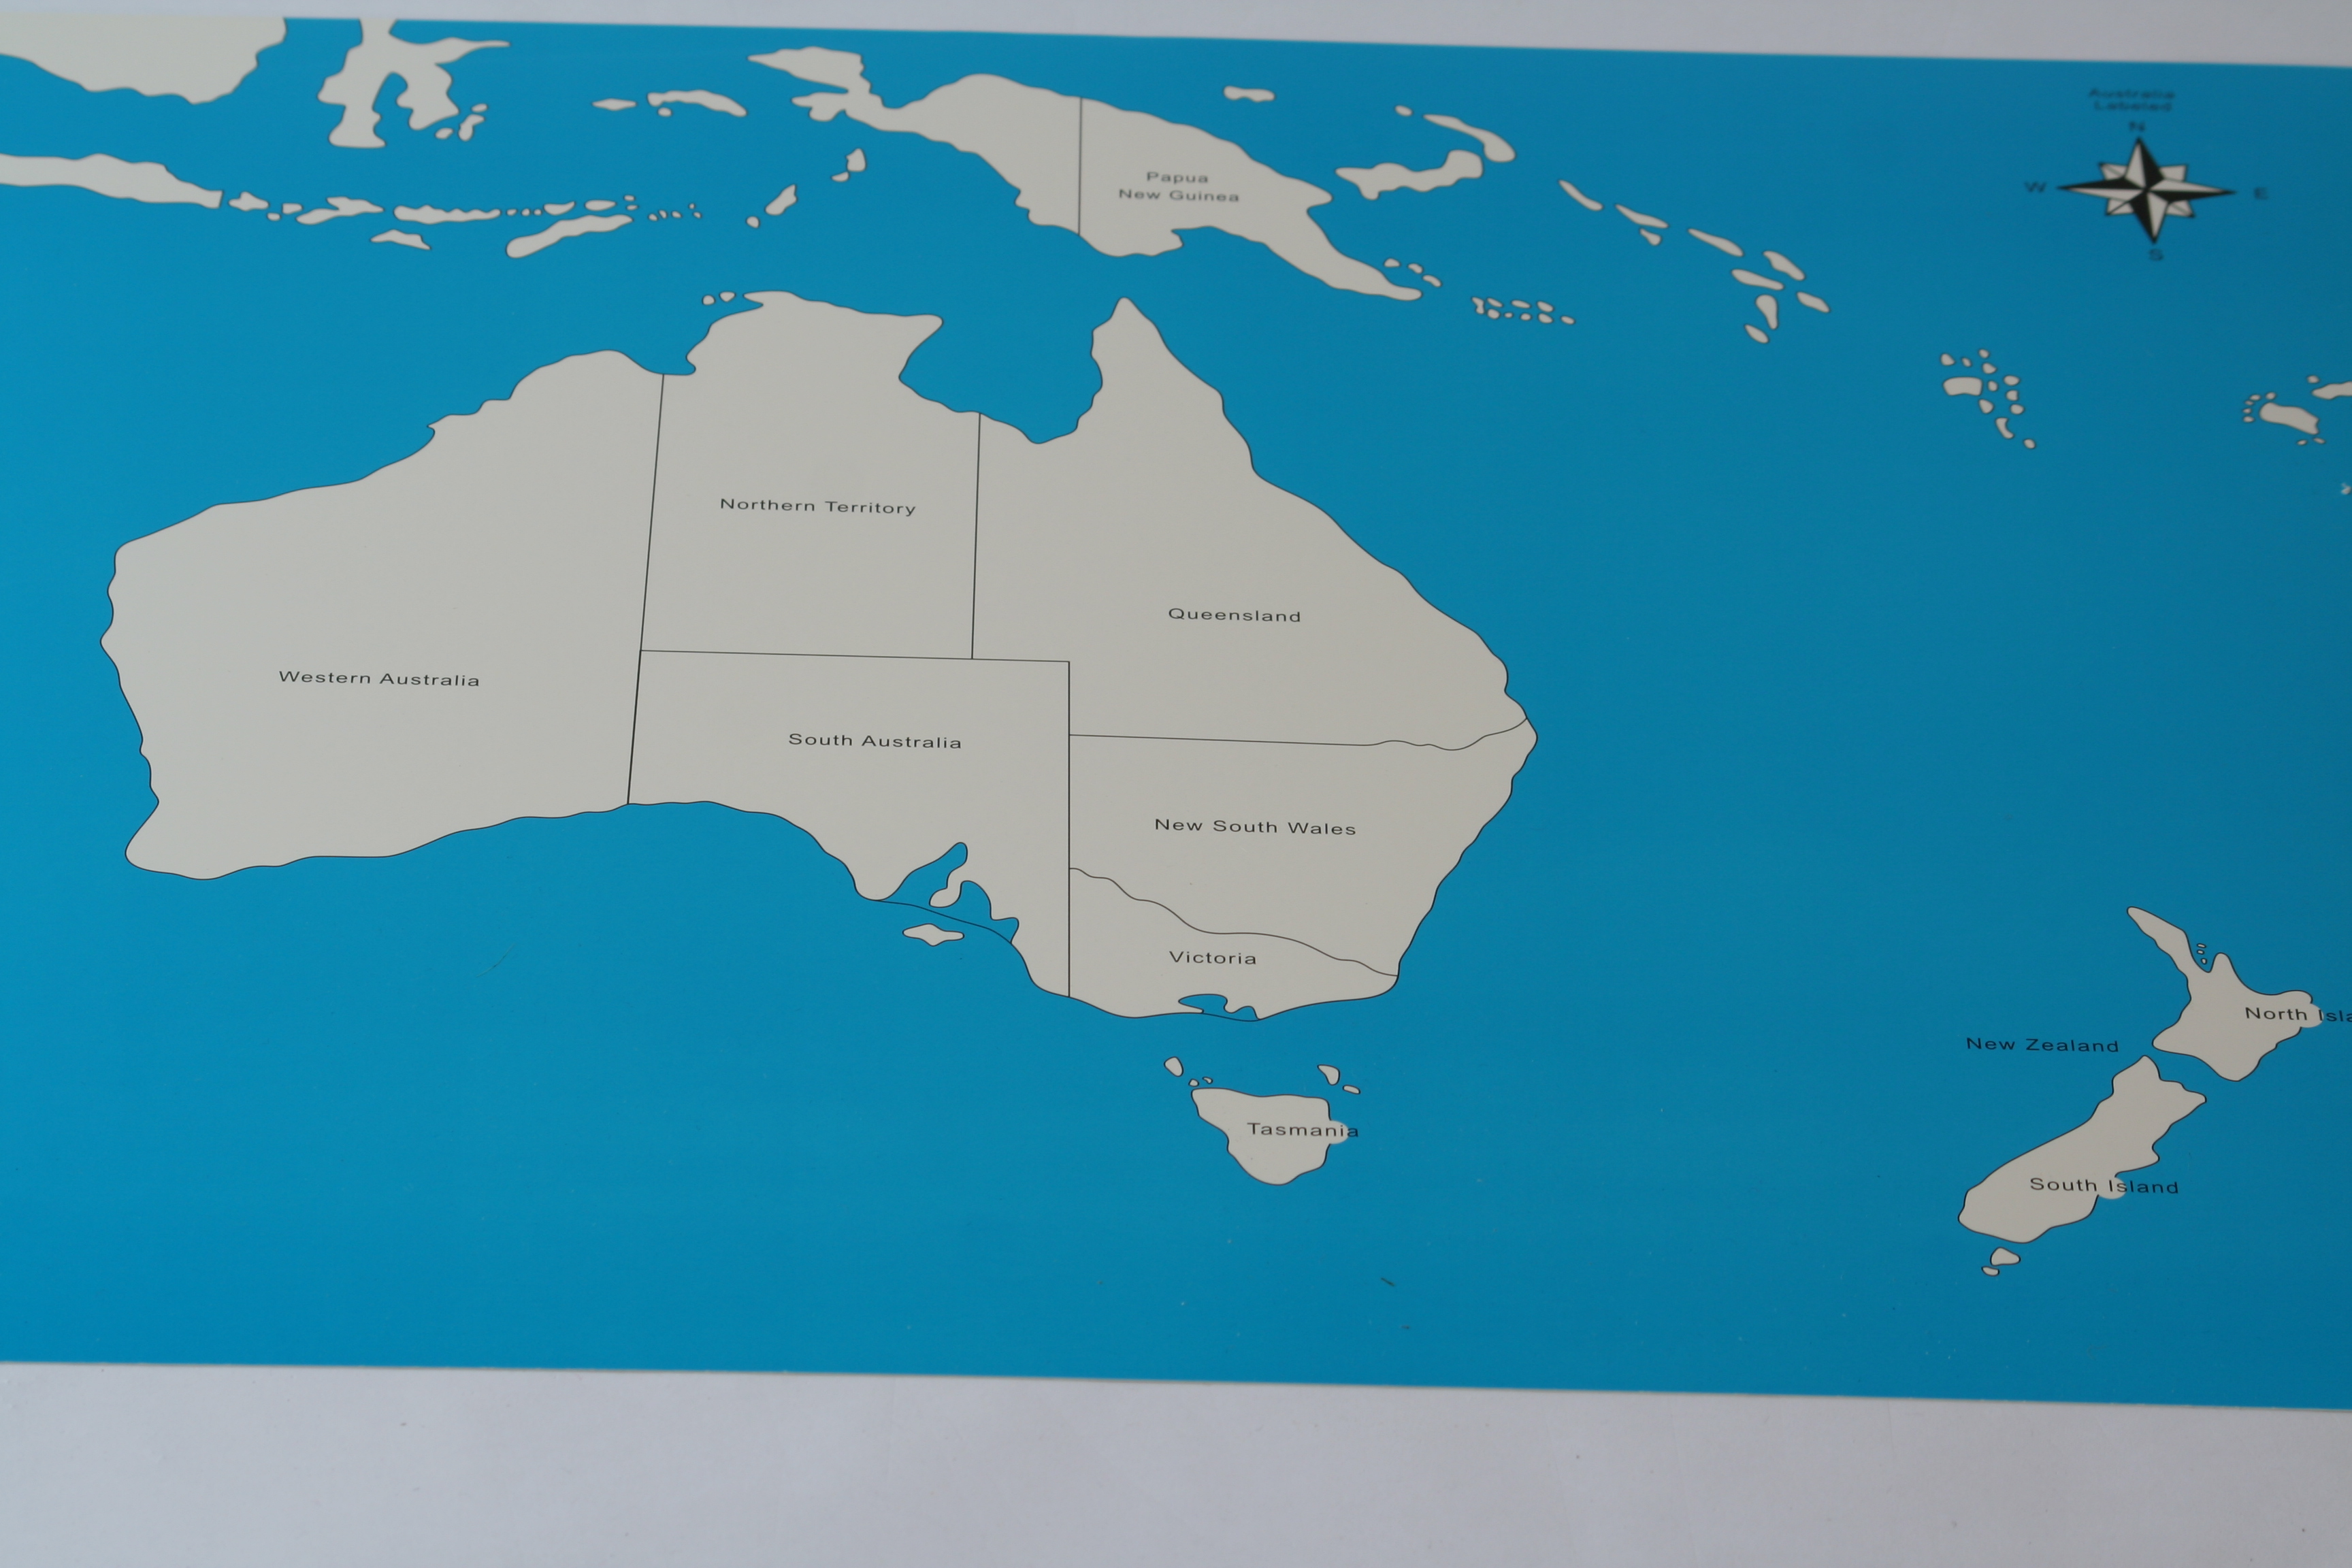 Map Of Australia Labelled.2 Control Maps Of Australia Labelled Unlabelled